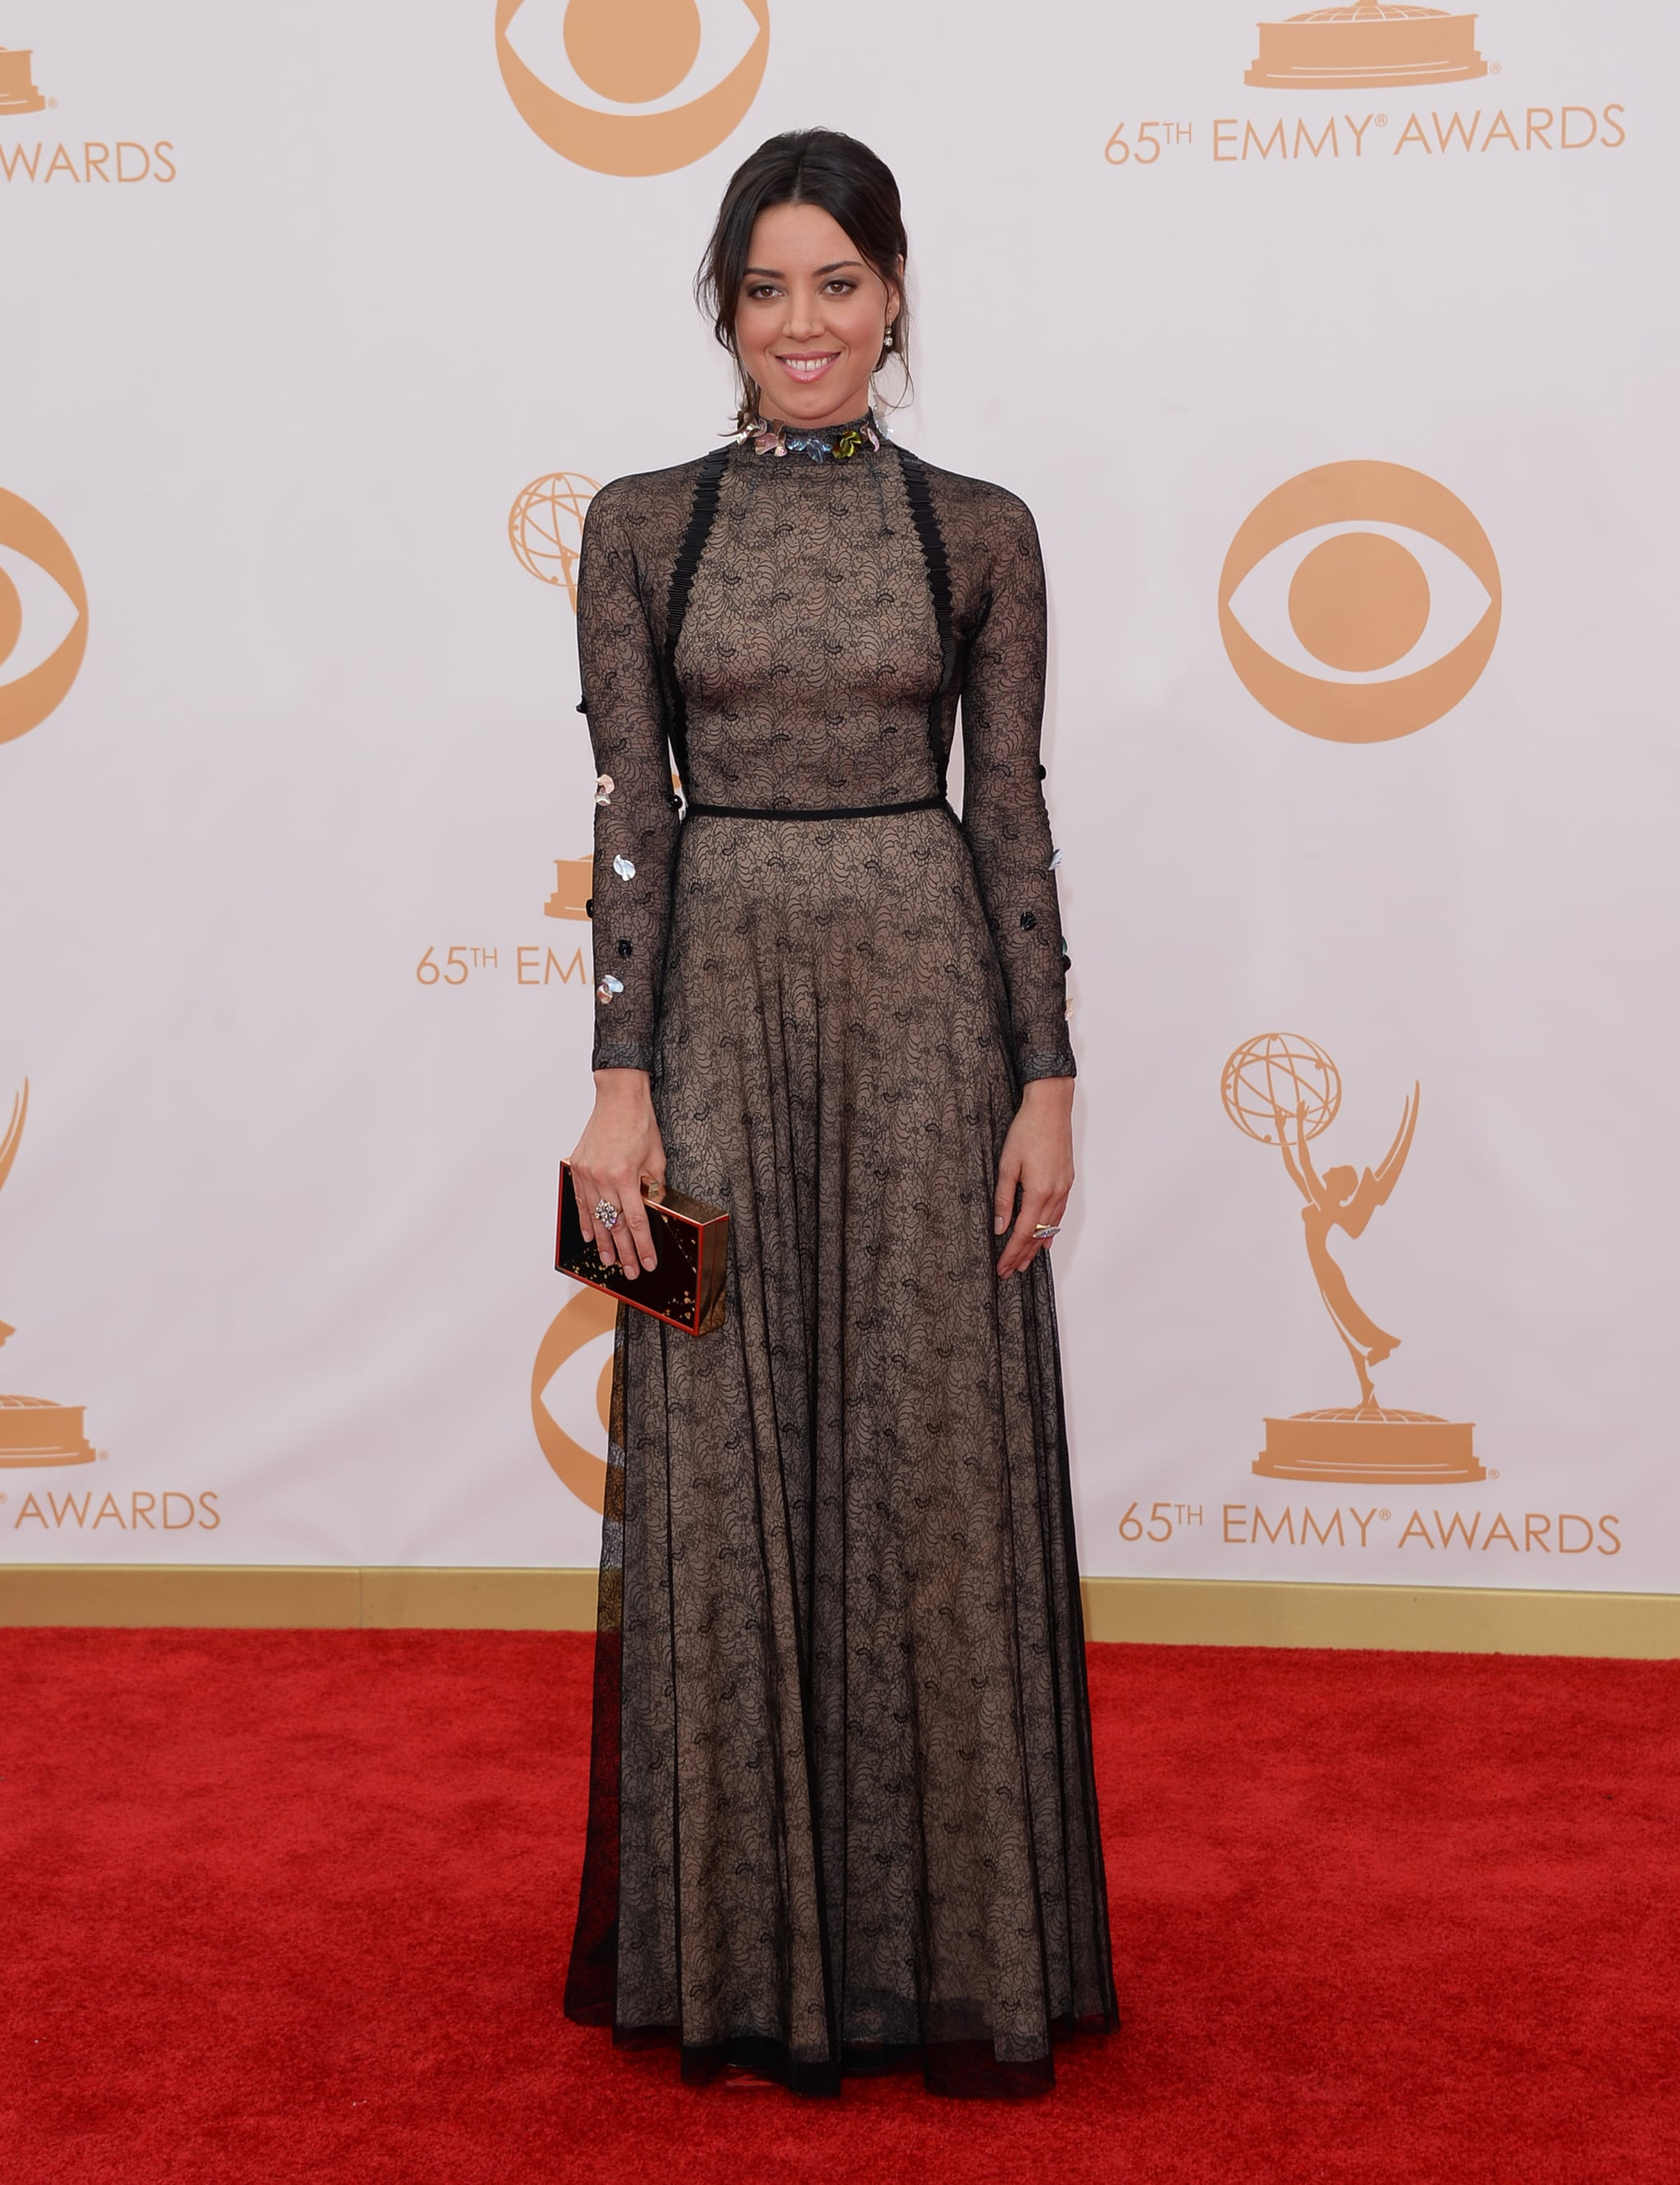 A high neck and long sleeves made Aubrey Plaza's Marios Schwab Resort 2014 dress downright demure.